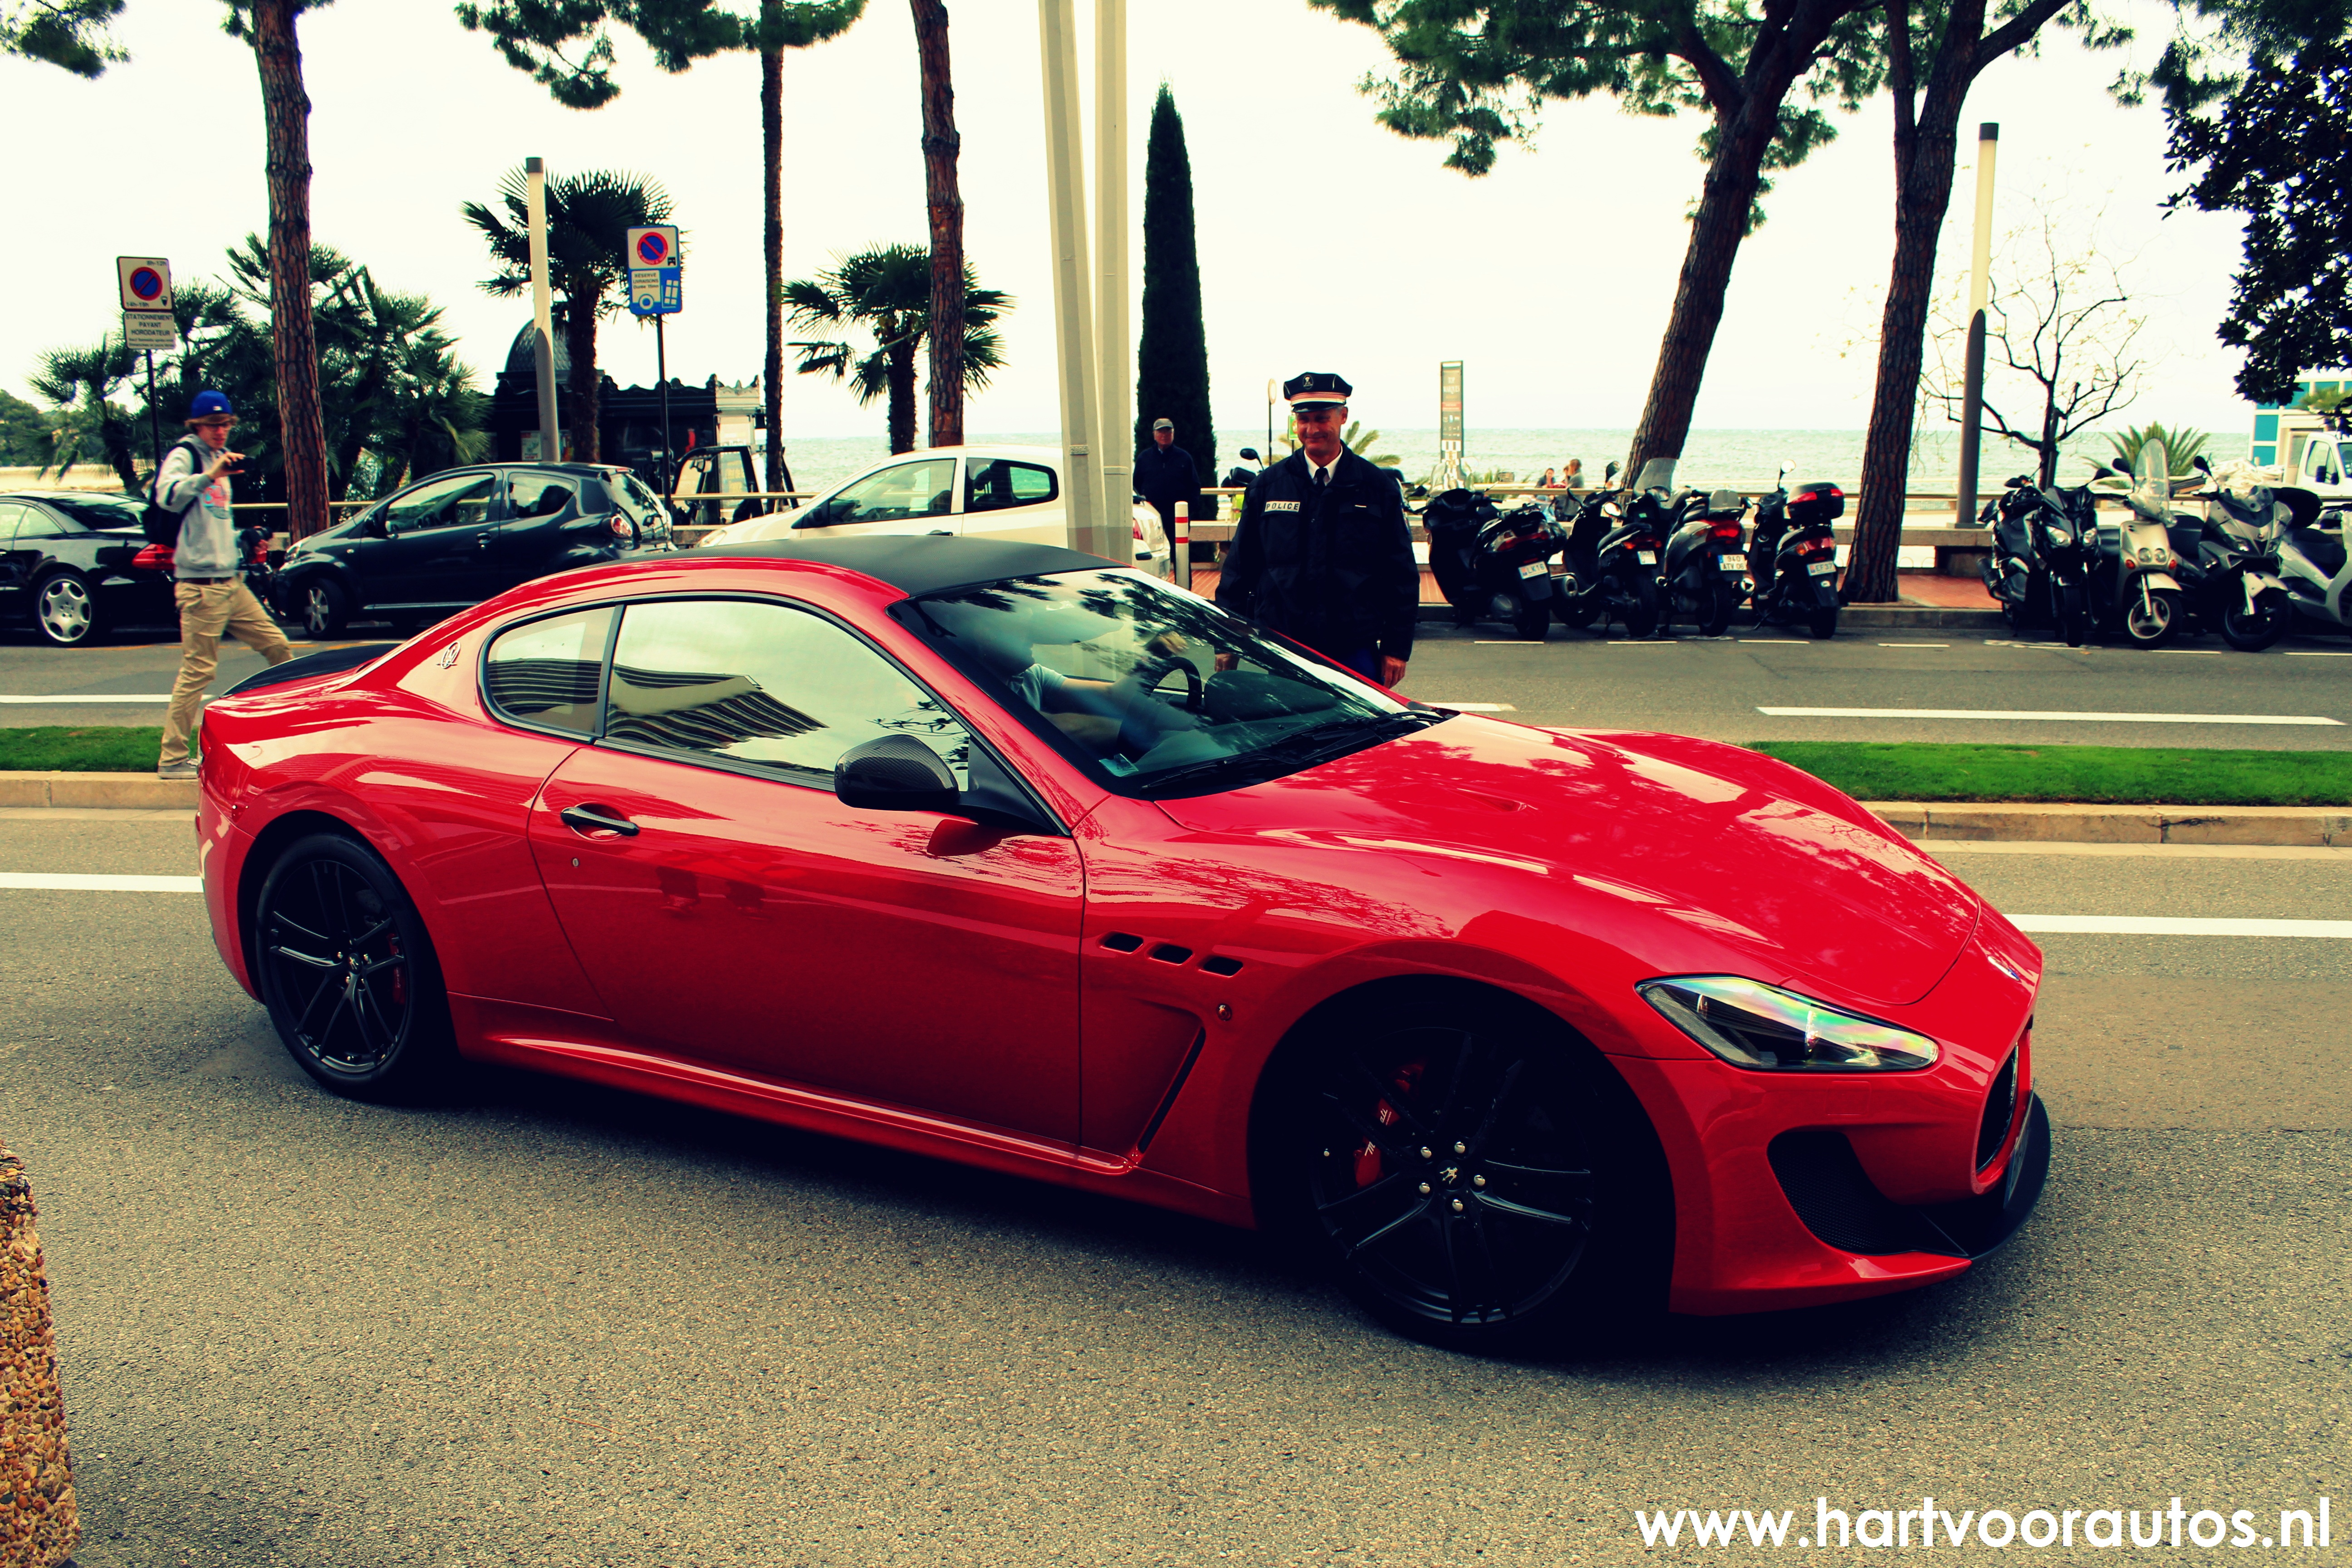 Ferrari & Maserati Pulled Over - Top Marques 2012 - www.hartvoorautos.nl